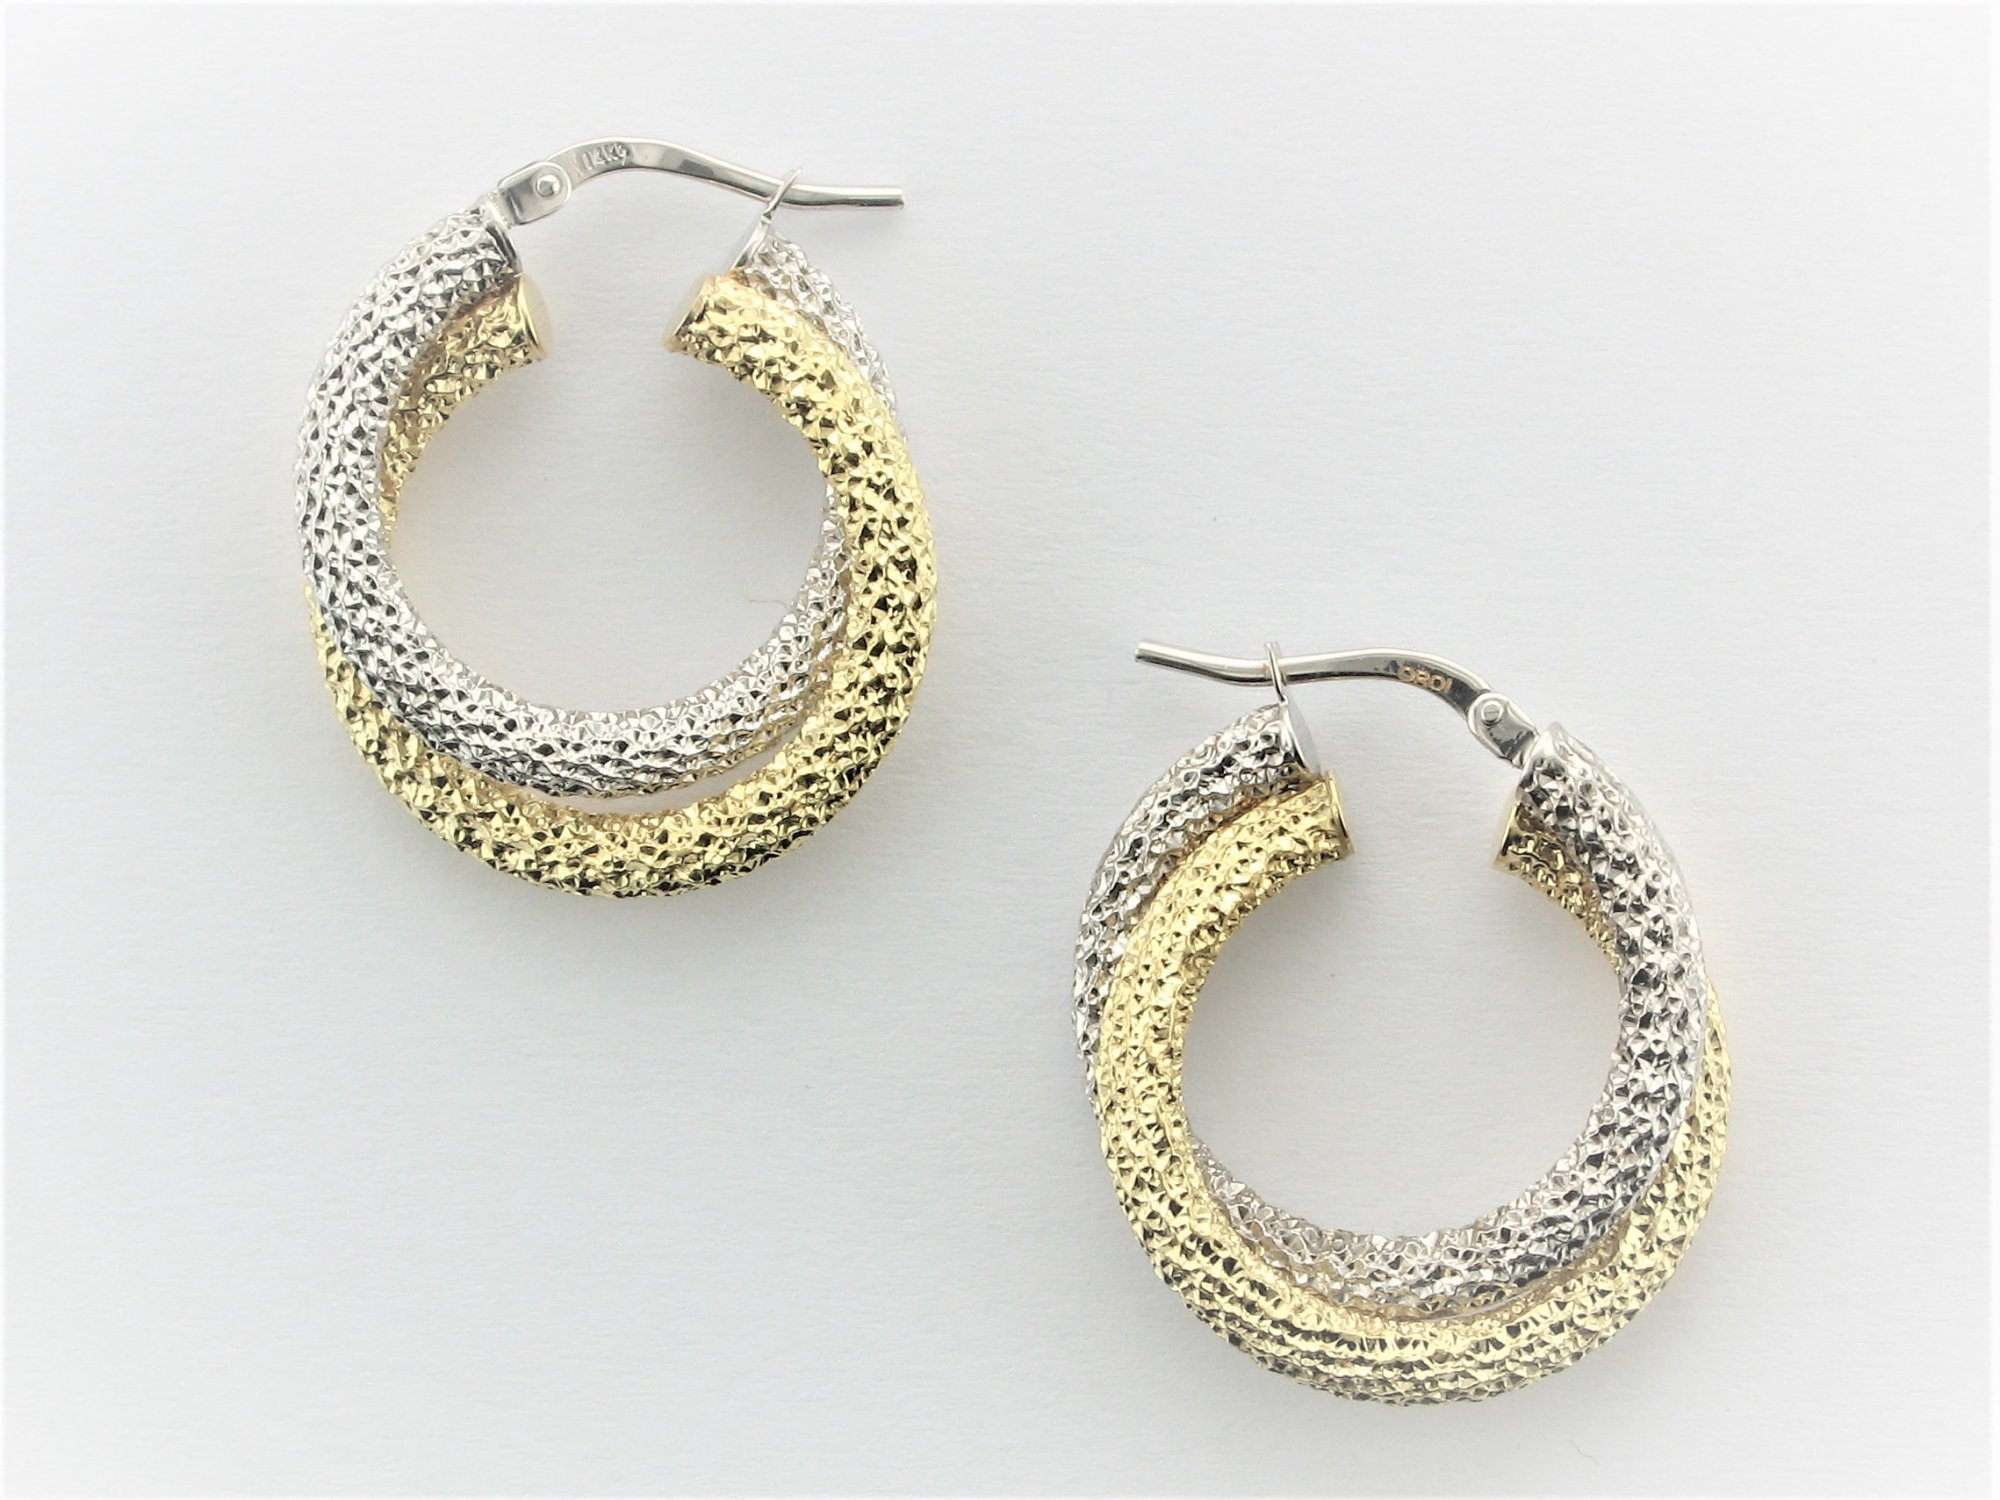 Two-Tone Diamond Cut Twisted Hoops Set in 14 Karat Yellow and White Gold